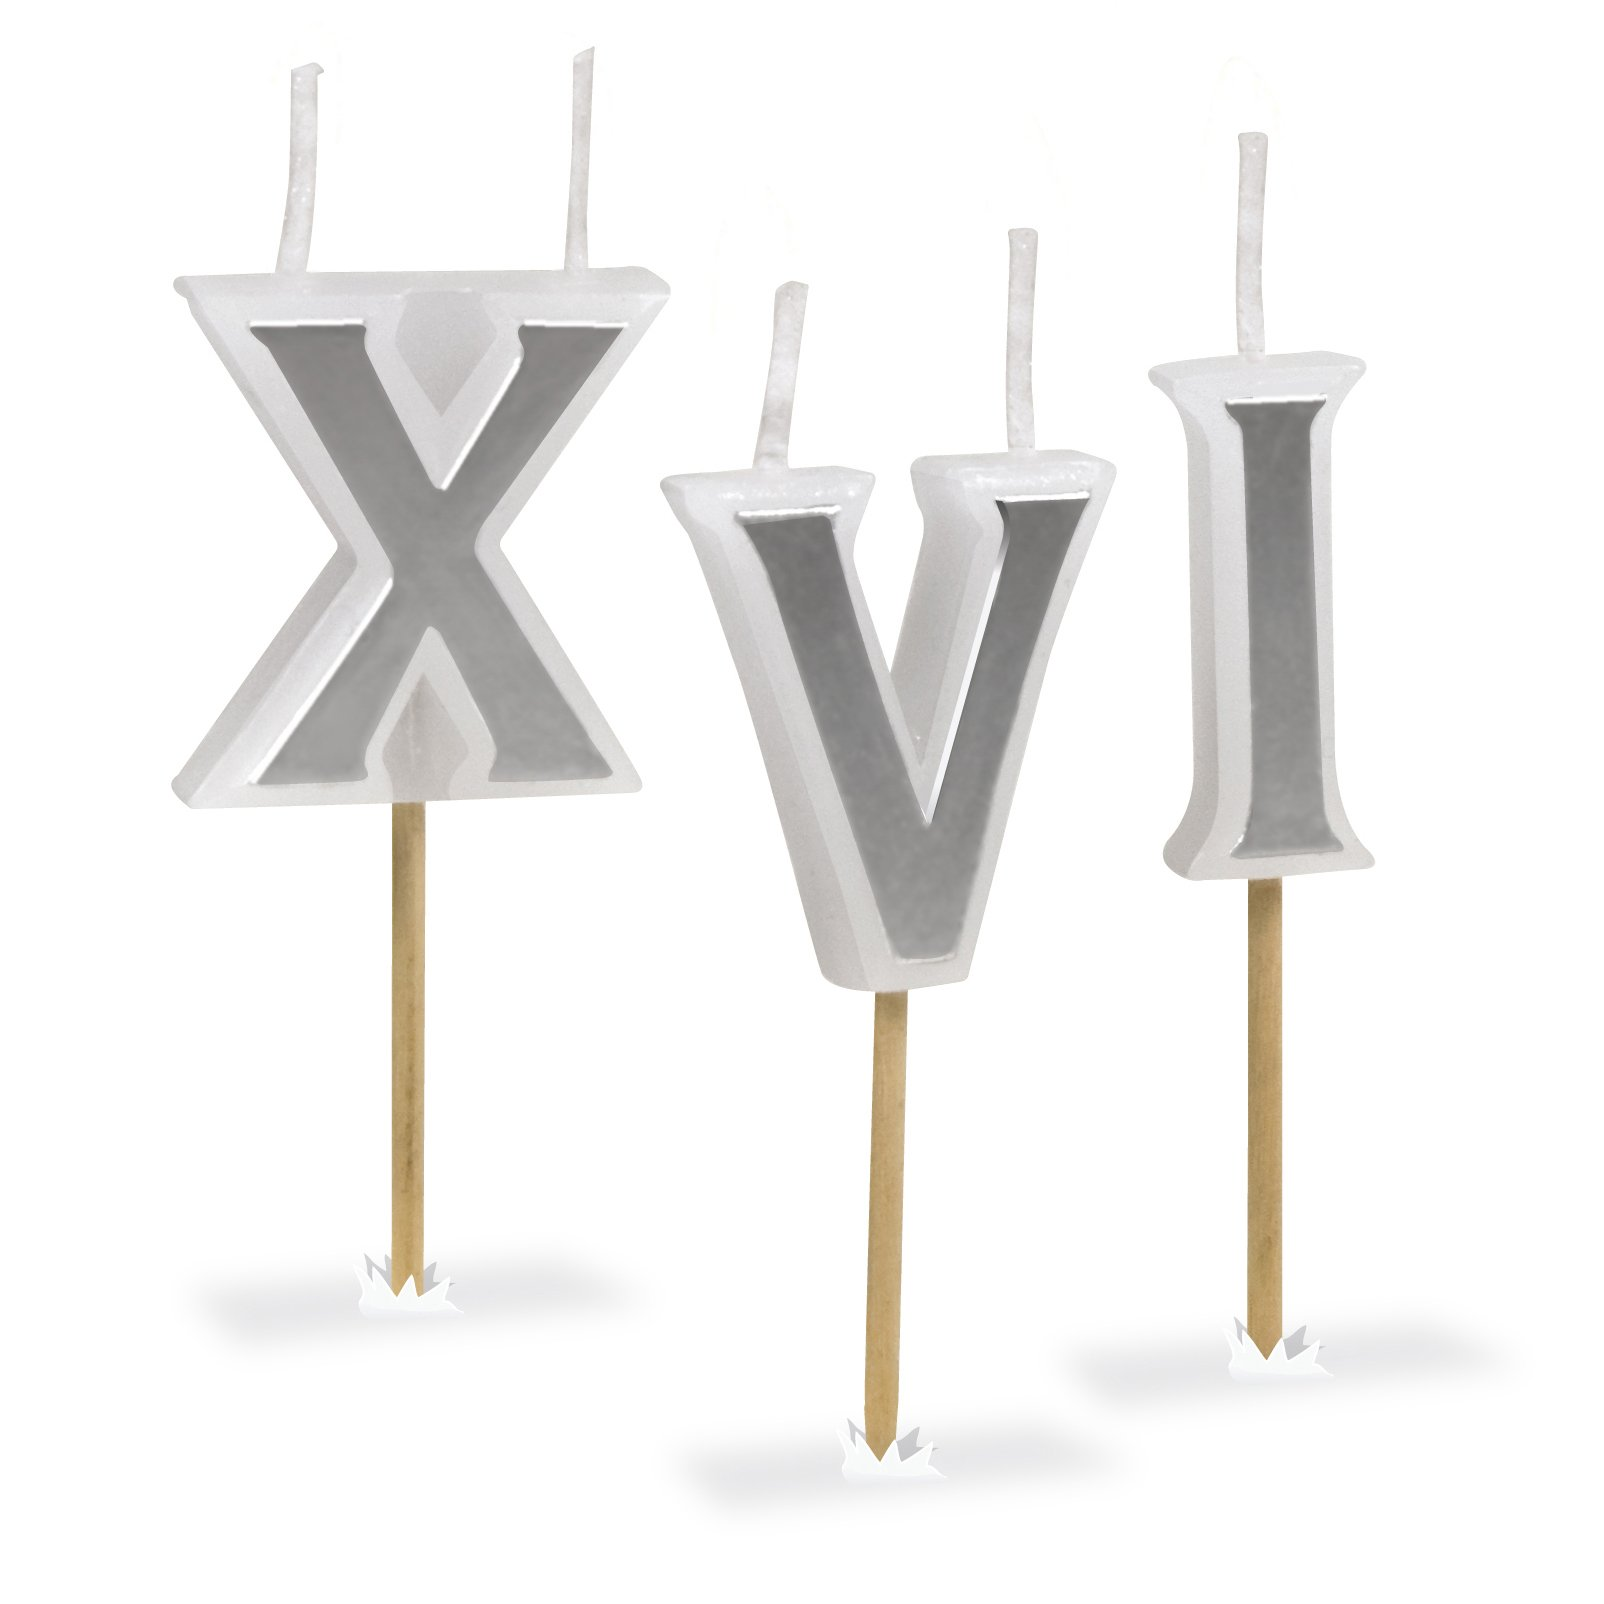 Genuine Fred ROMAN CANDLES Roman Numeral Birthday Candles, Set of 8